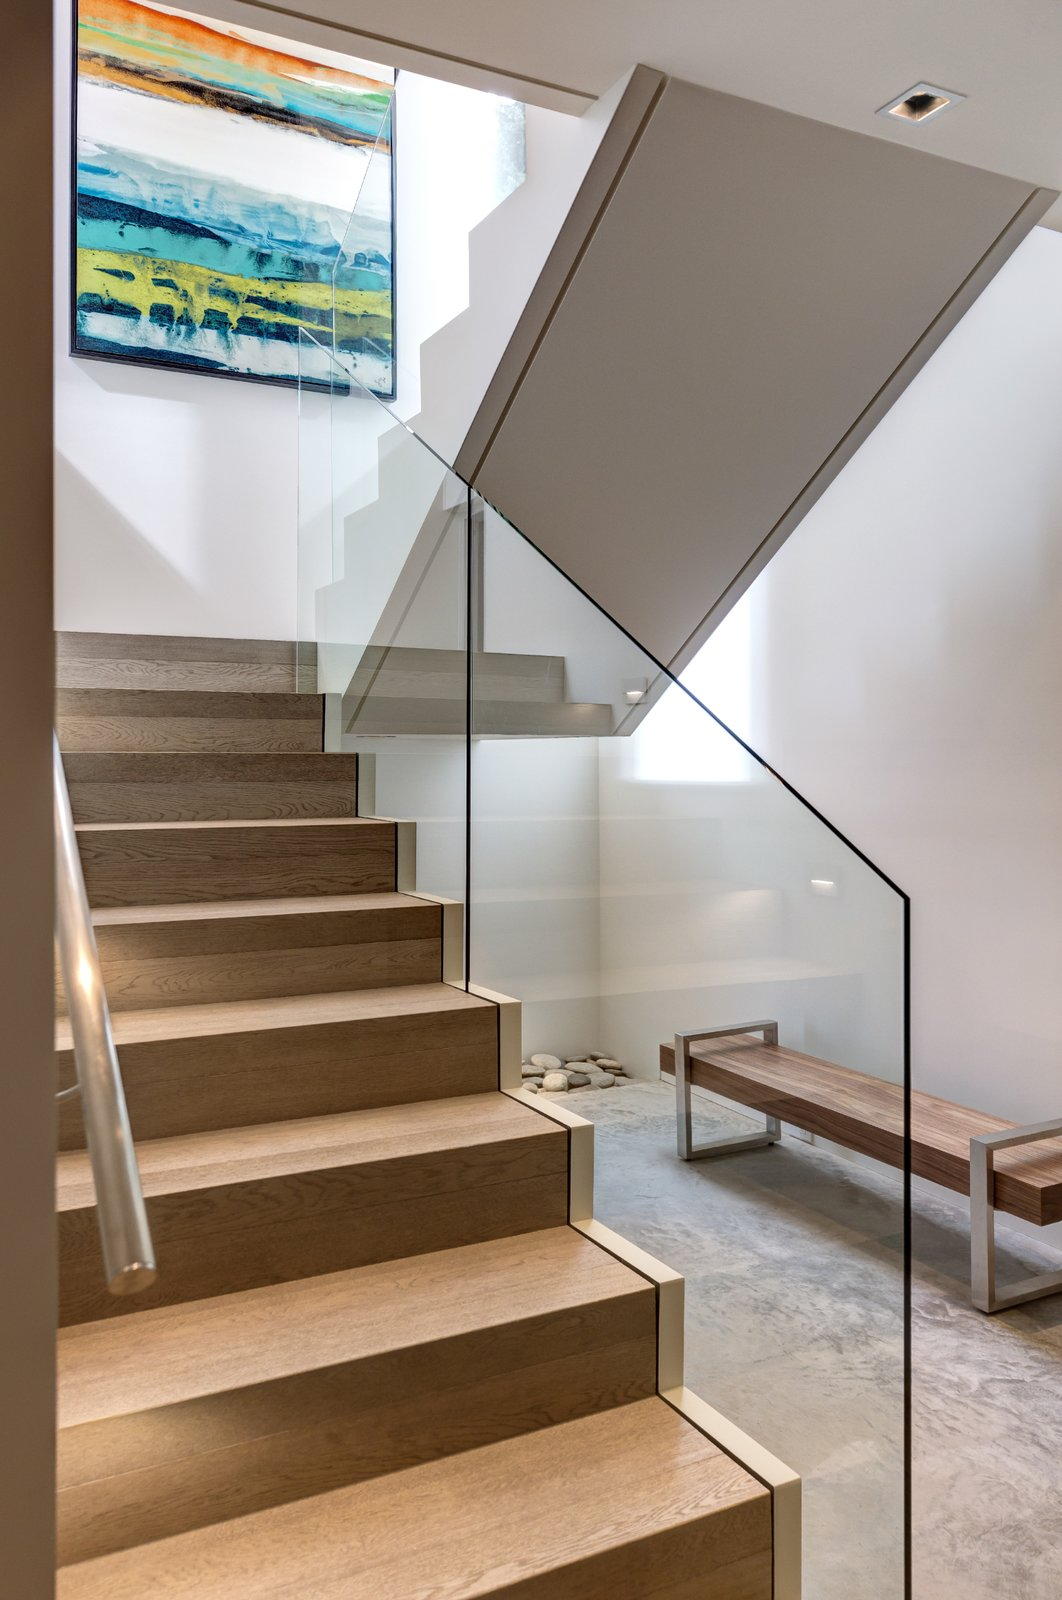 Garden Wall Residence, modern staircase  Garden Wall Residence by Garret Cord Werner